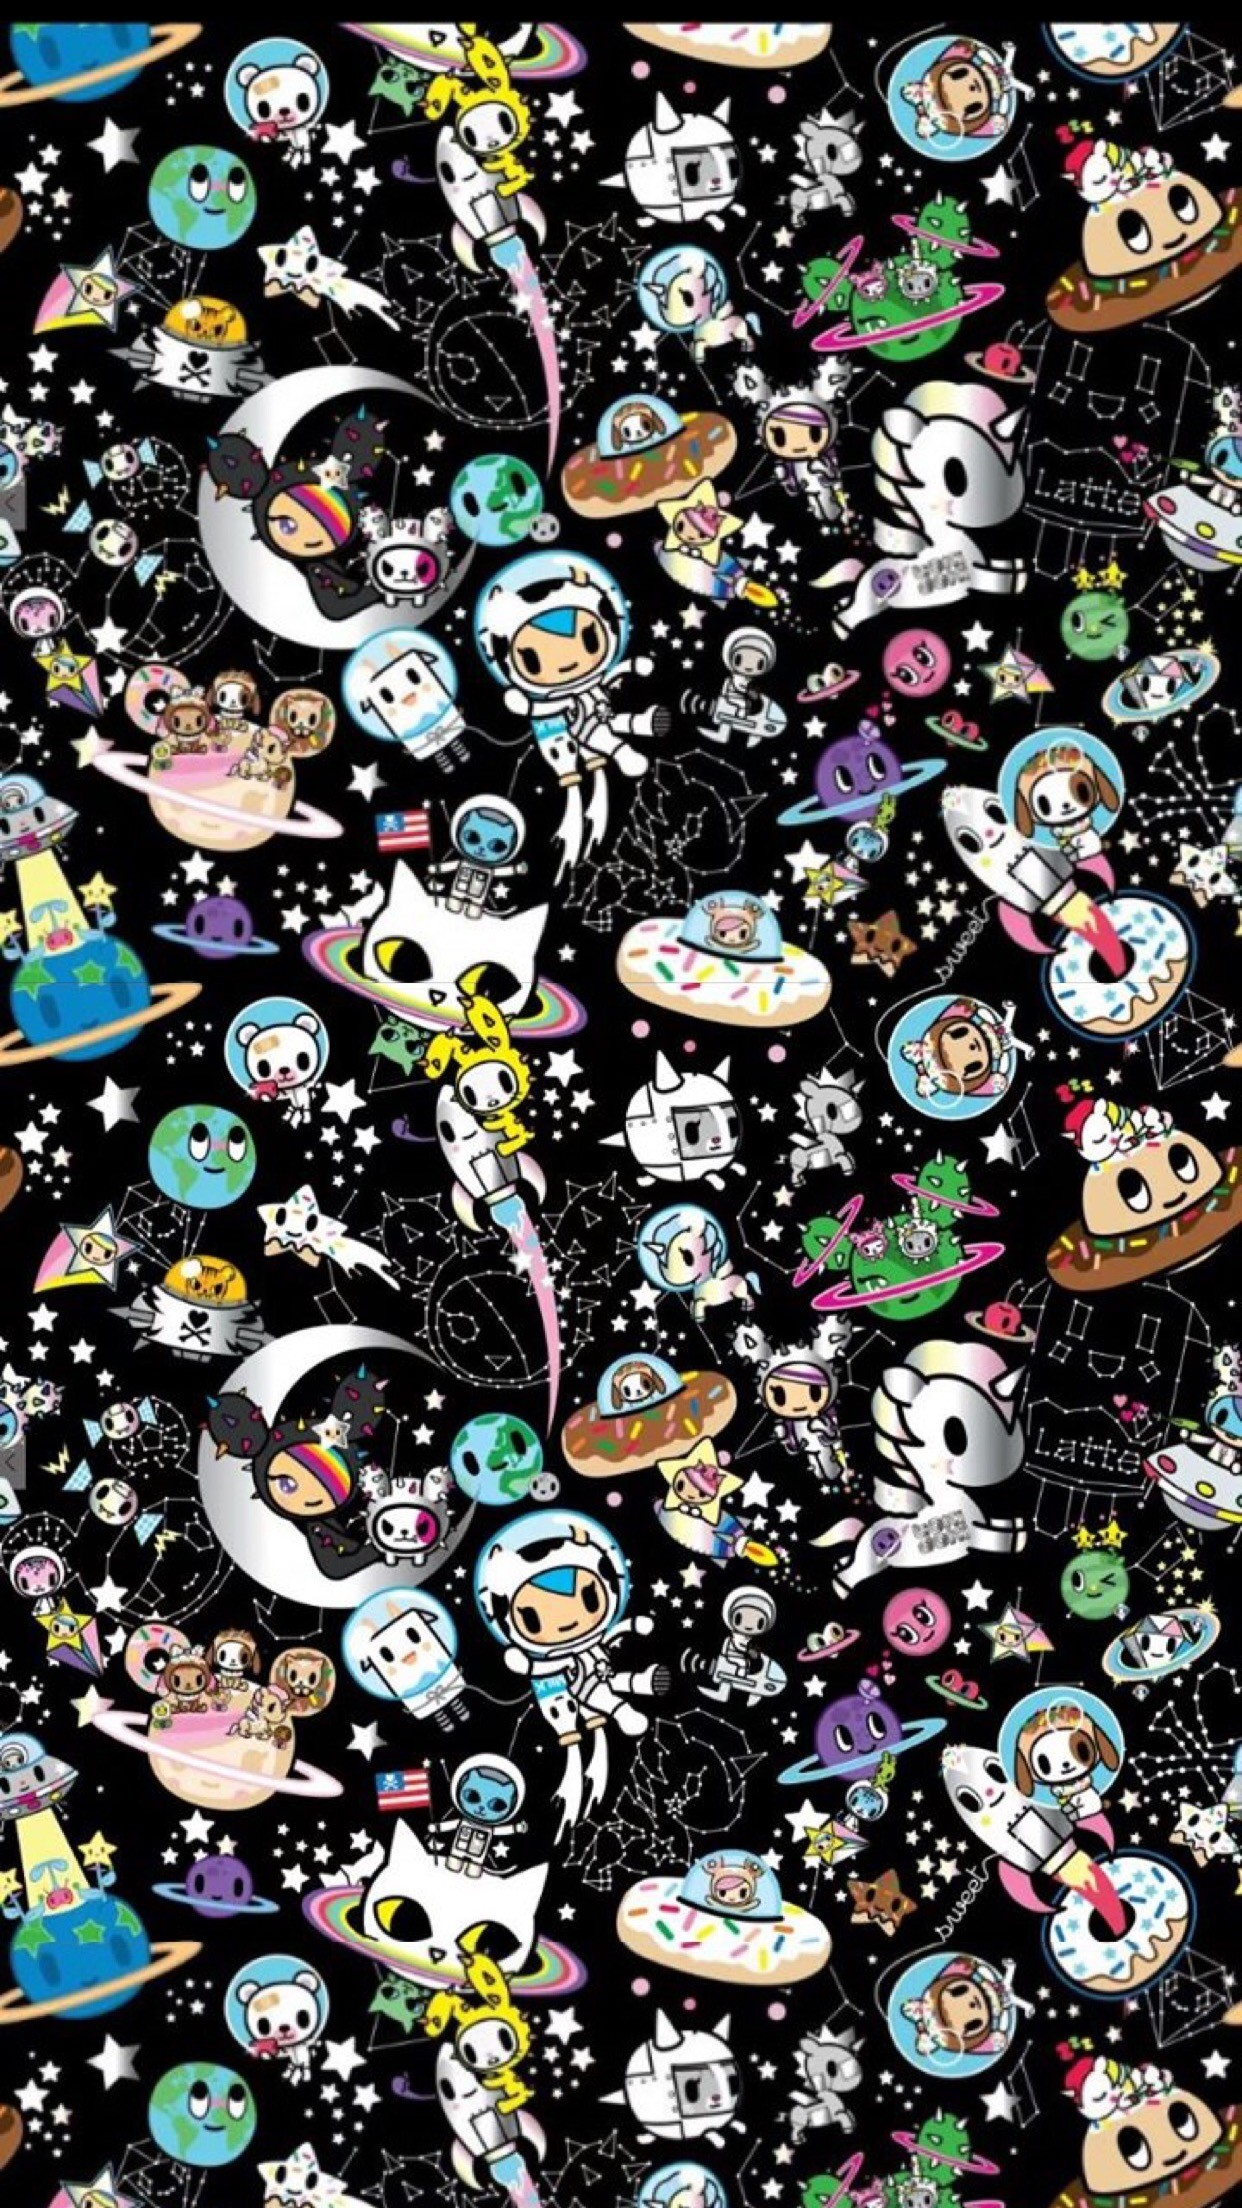 Anime Iphone X Wallpapers Deviantart Tokidoki Unicorno Wallpaper 69 Images